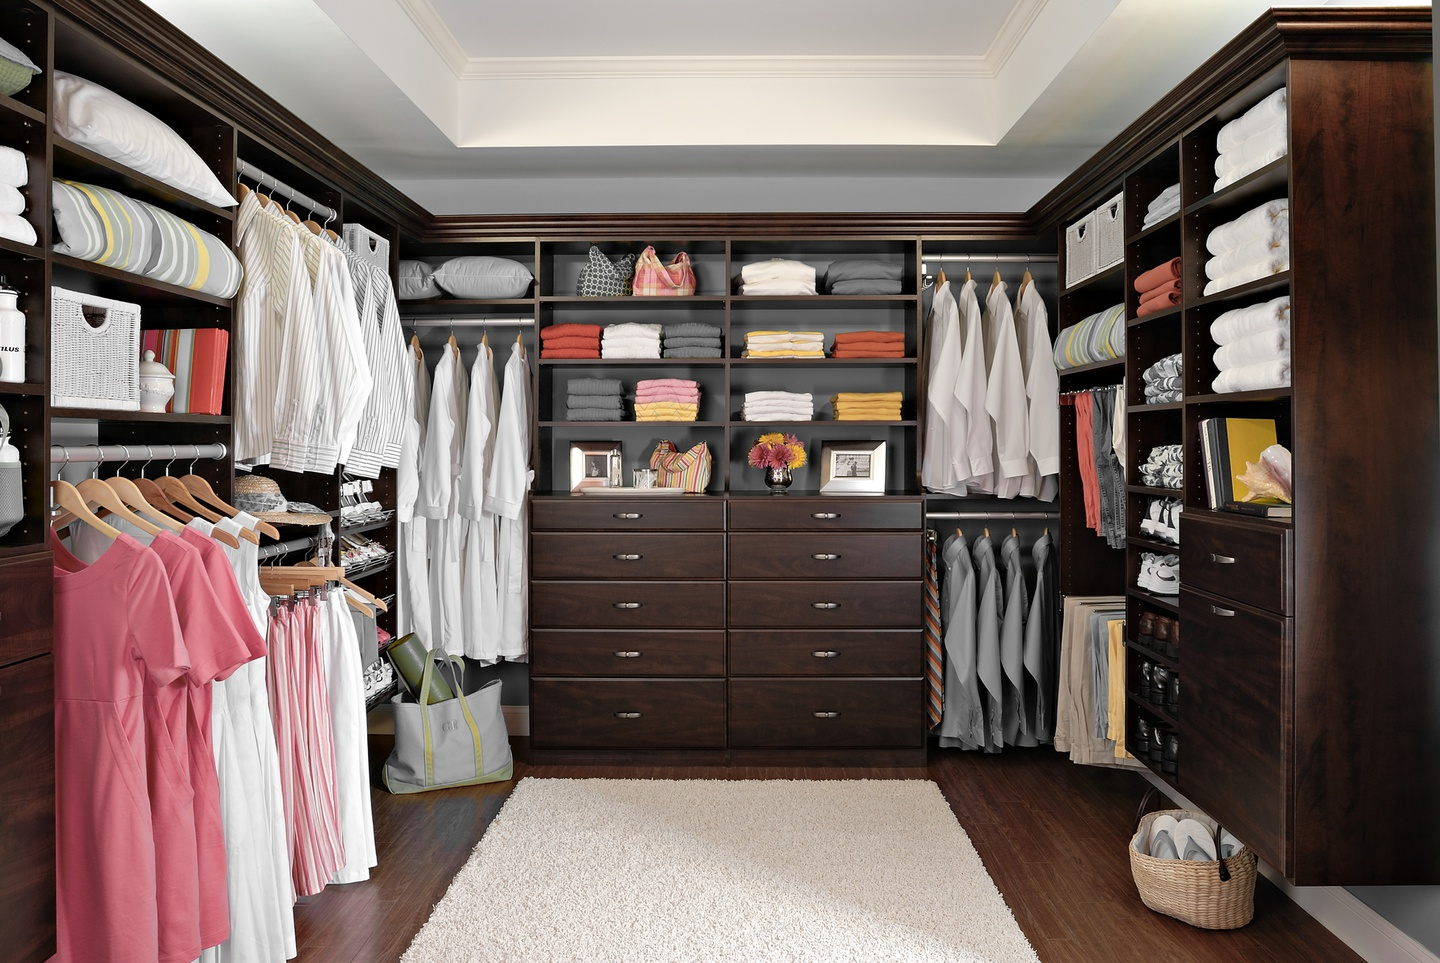 Custom Closet Organizers Closet Systems Organization Easyclosets